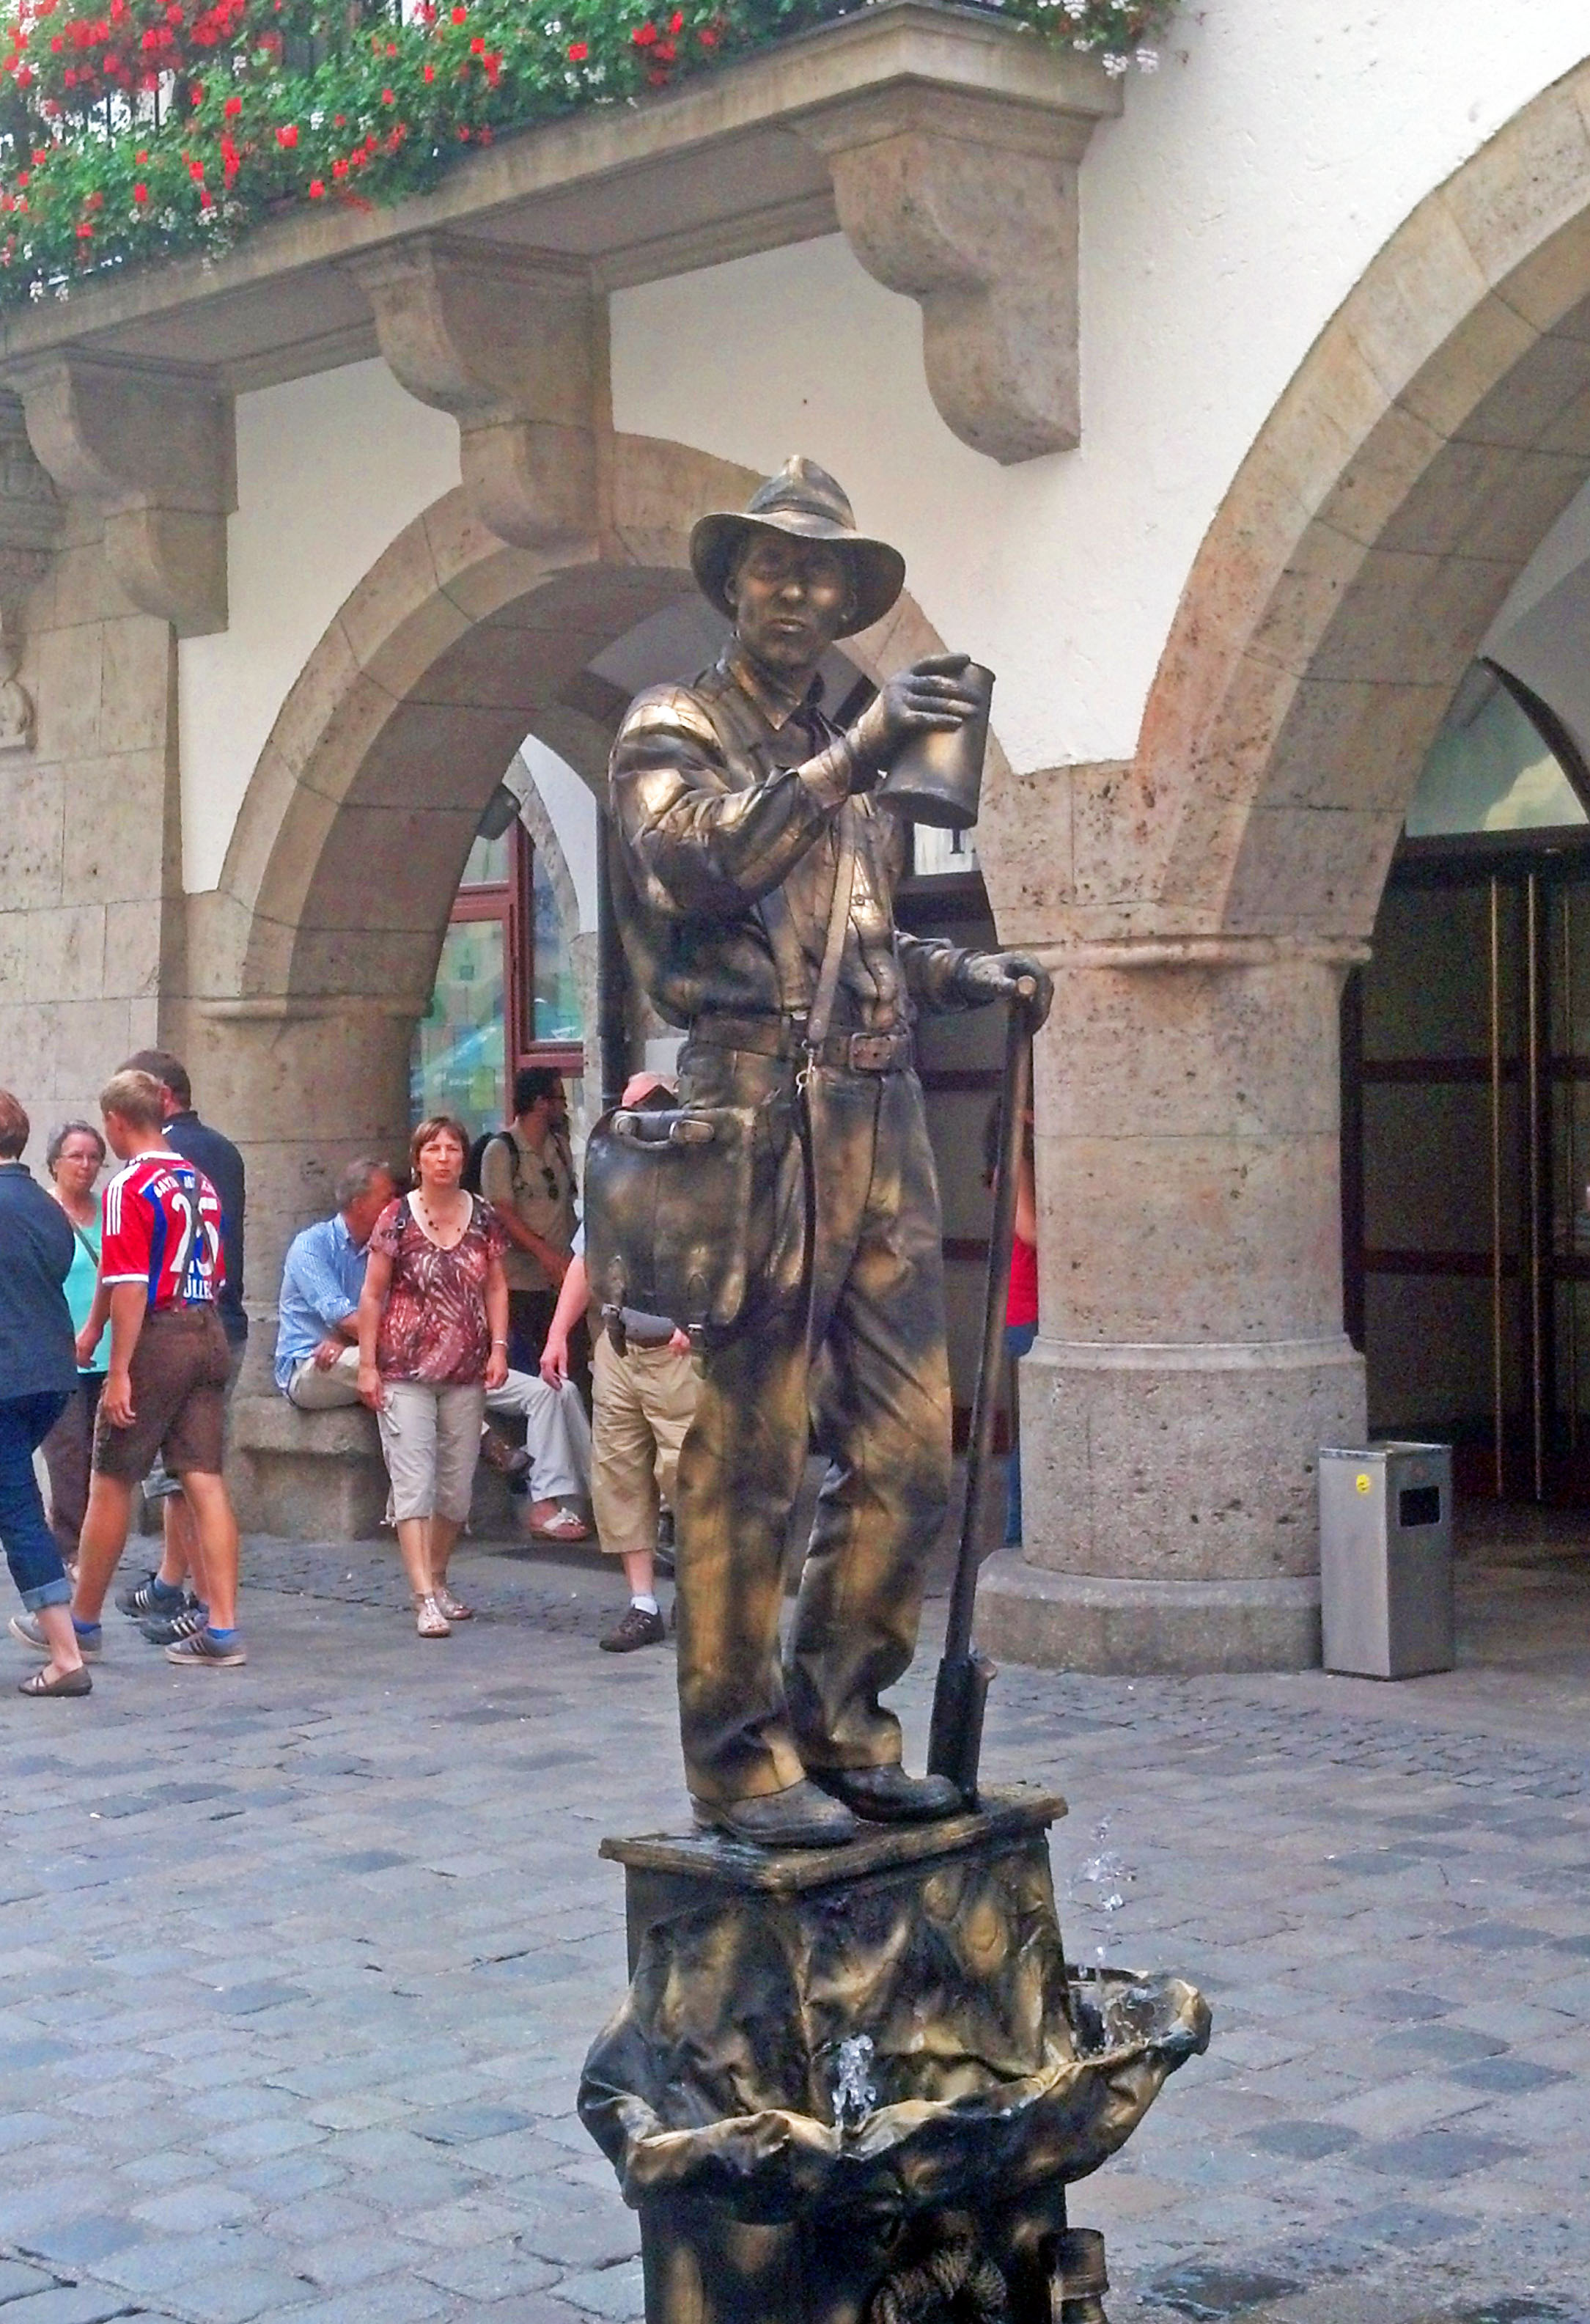 A mime entertaining in Munich's Marienplatz.